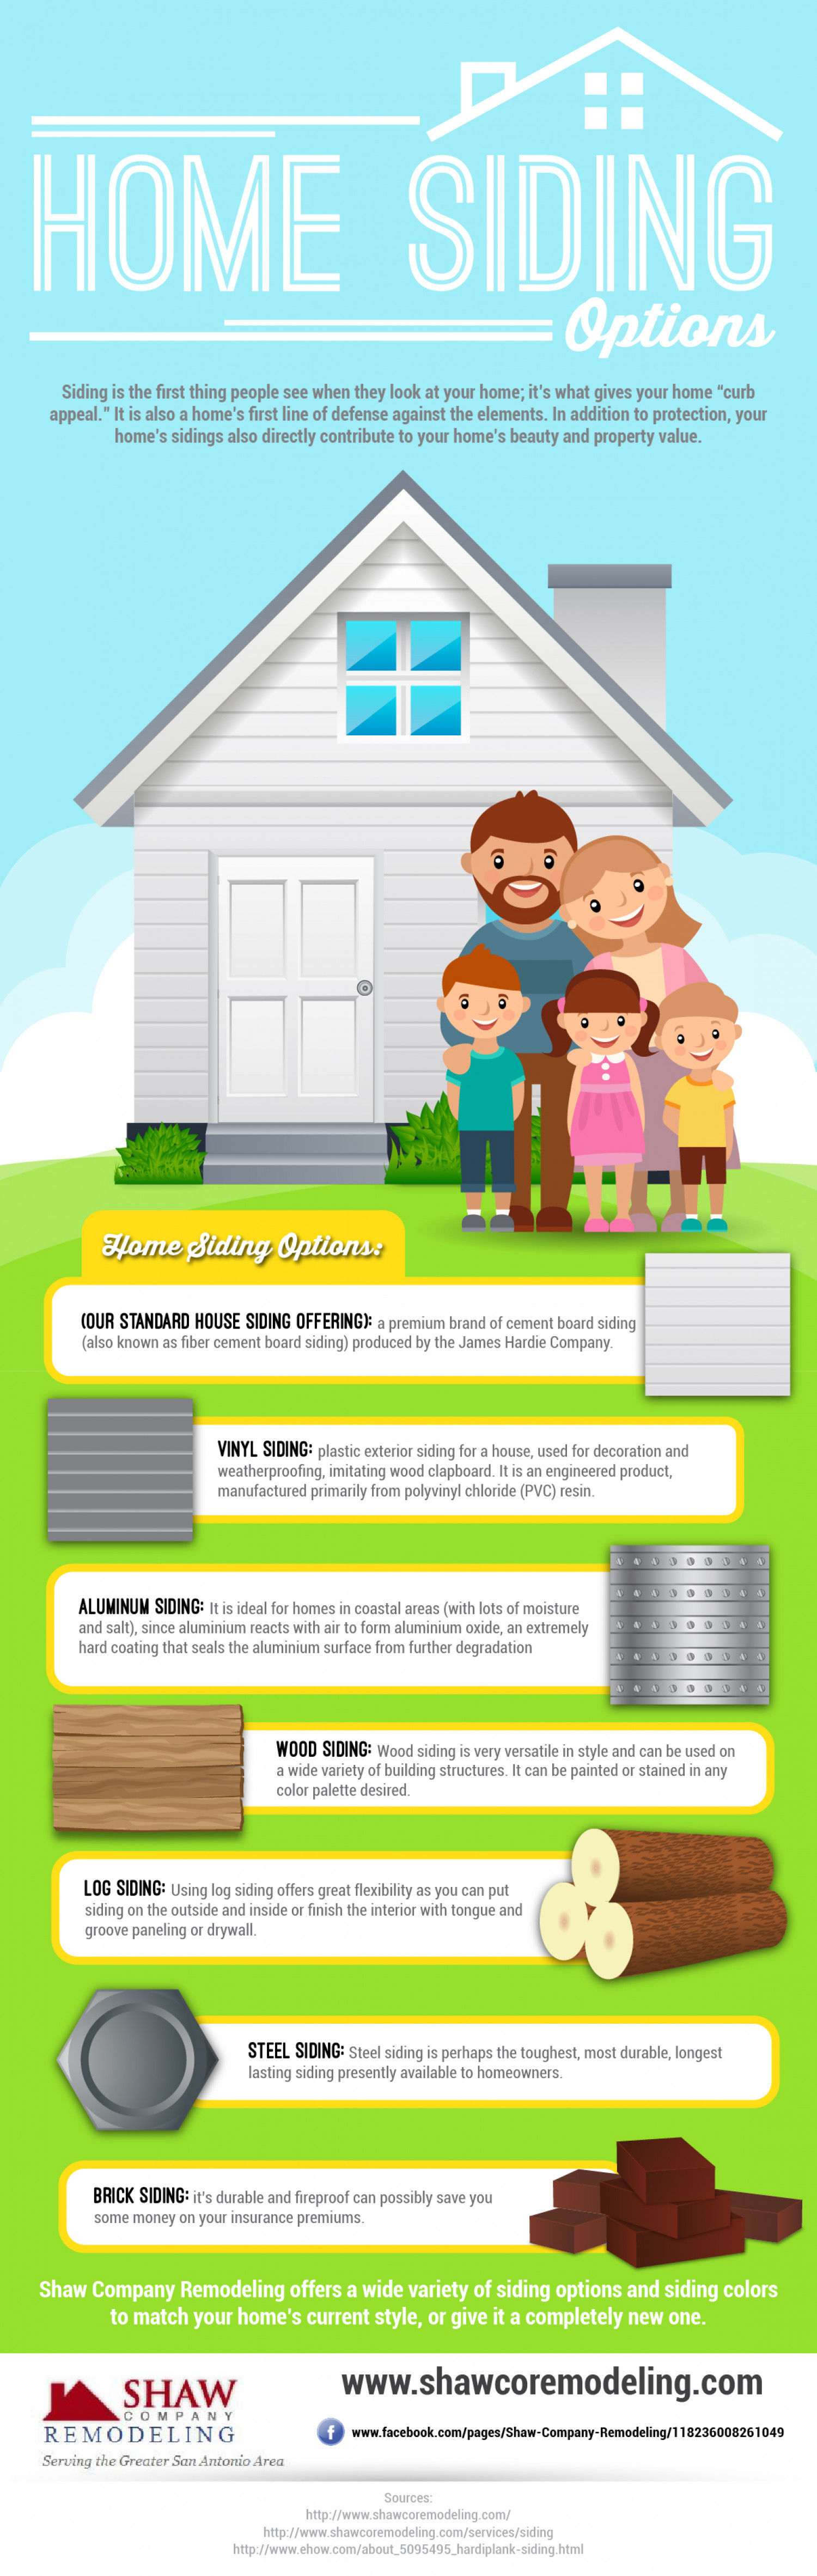 Home Siding Options Infographic   Shaw Company Remodeling San Antonio  InfographicHome Siding Options Infographic   Shaw Company Remodeling San  . Shaw Company Remodeling San Antonio. Home Design Ideas